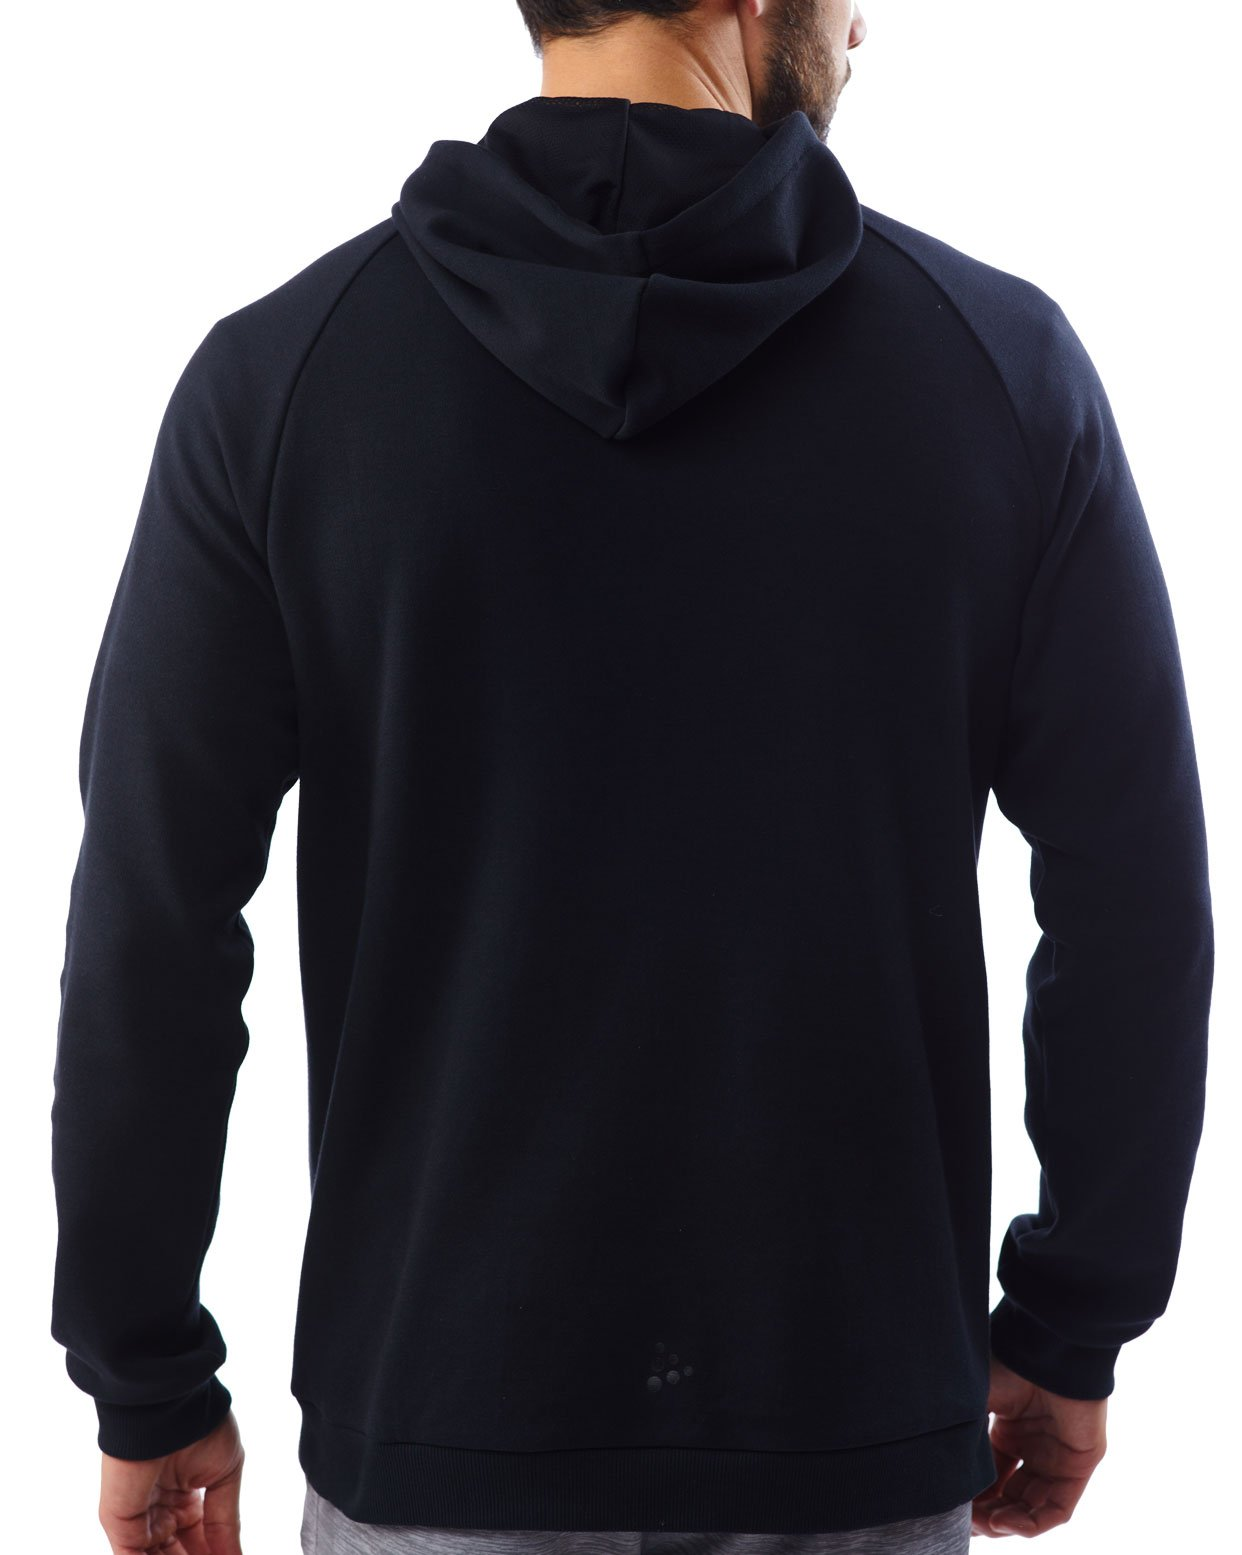 SPARTAN by CRAFT District Pullover Hoodie